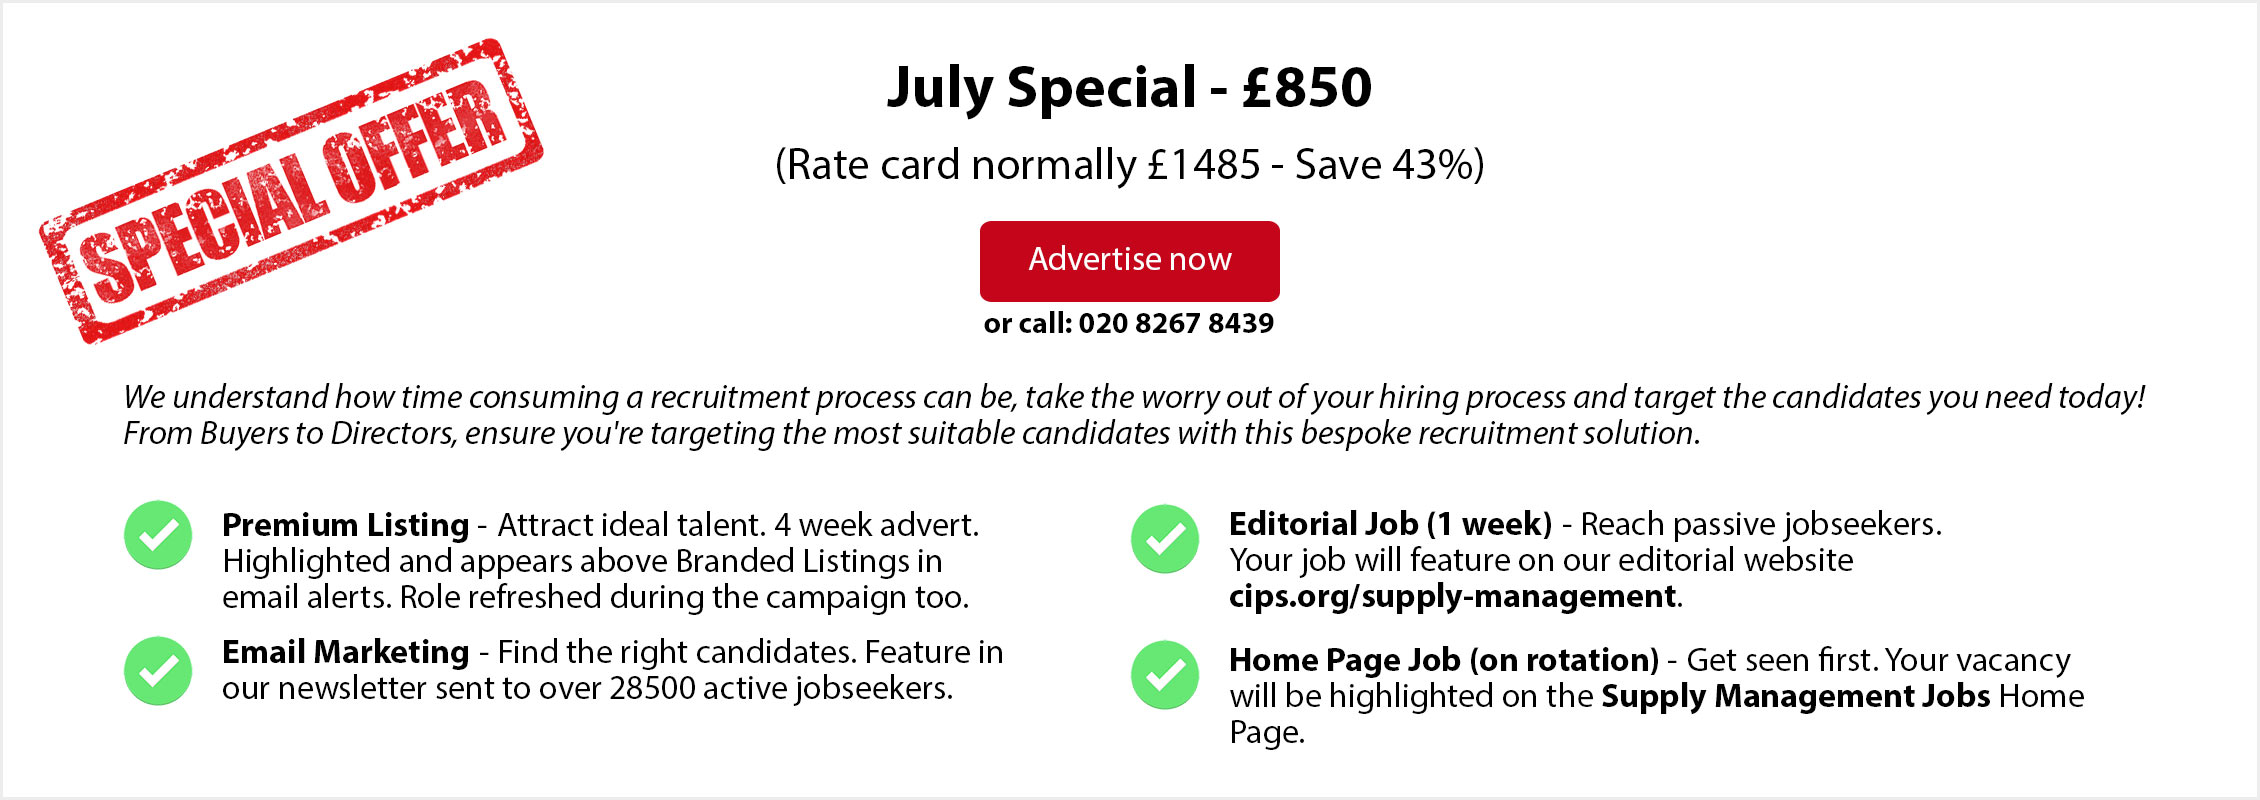 Special Offer. July Special - £850. (Rate card normally £1485 - Save 43%. ADVERTISE NOW or call: 020 8267 8439. From Buyers to Directors, ensure you're targeting the most suitable candidates with this bespoke recruitment solution. Premium Listing - Attract ideal talent. 4 week advert. Highlighted and appears above Branded Listings in email alerts. Role refreshed during the campaign too. Email Marketing - Find the right candidates. Feature in  our newsletter sent to over 28500 active jobseekers. Editorial Job (1 week) - Reach passive jobseekers. Your job will feature on our editorial website  cips.org/supply-management. Home Page Job (on rotation) - Get seen first. Your vacancy will be highlighted on the Supply Management Jobs Home Page.